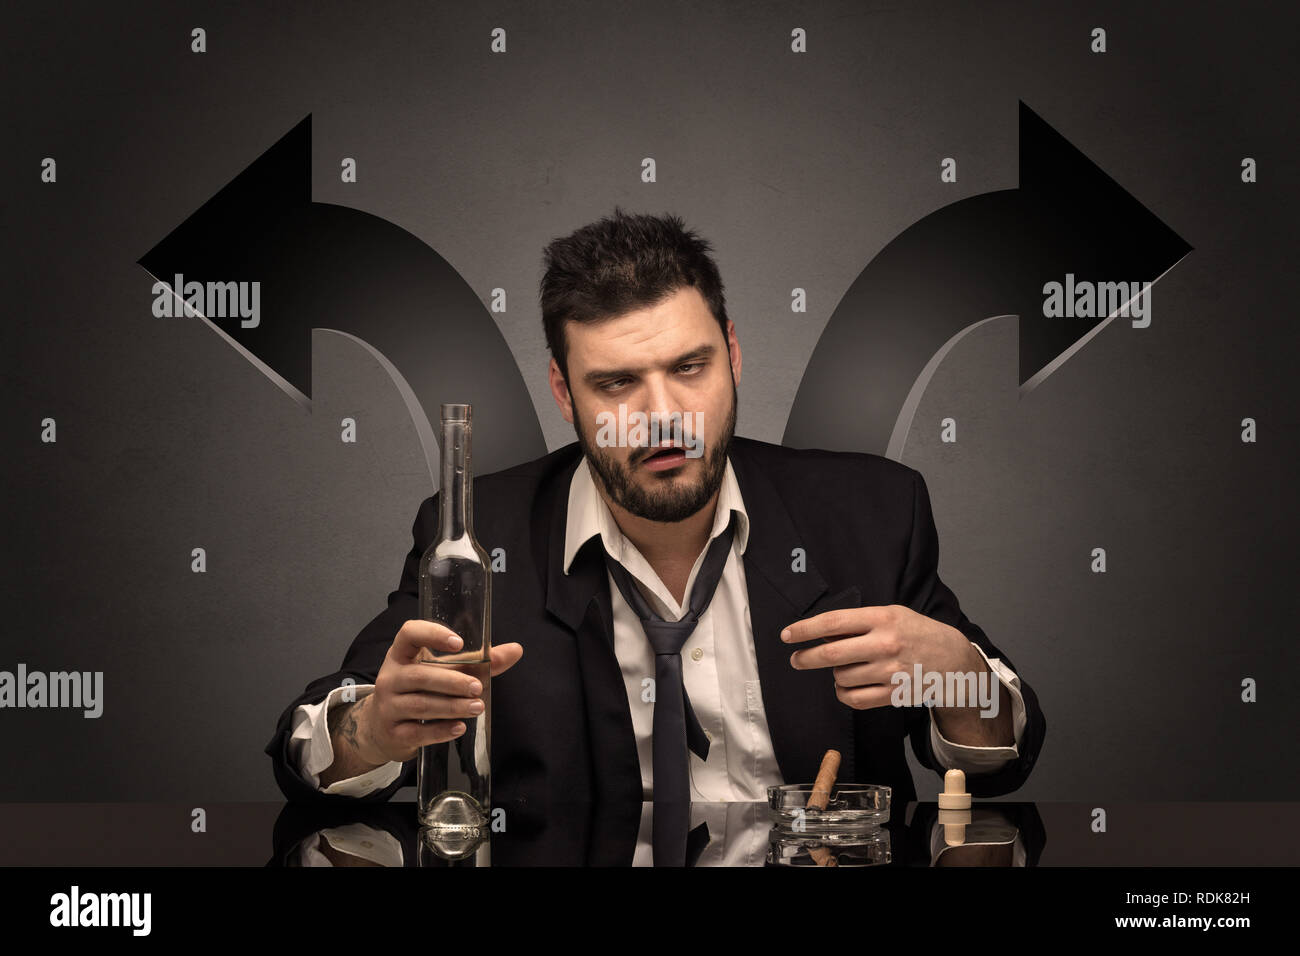 Drunk disappointed man sitting at table with arrows around  - Stock Image